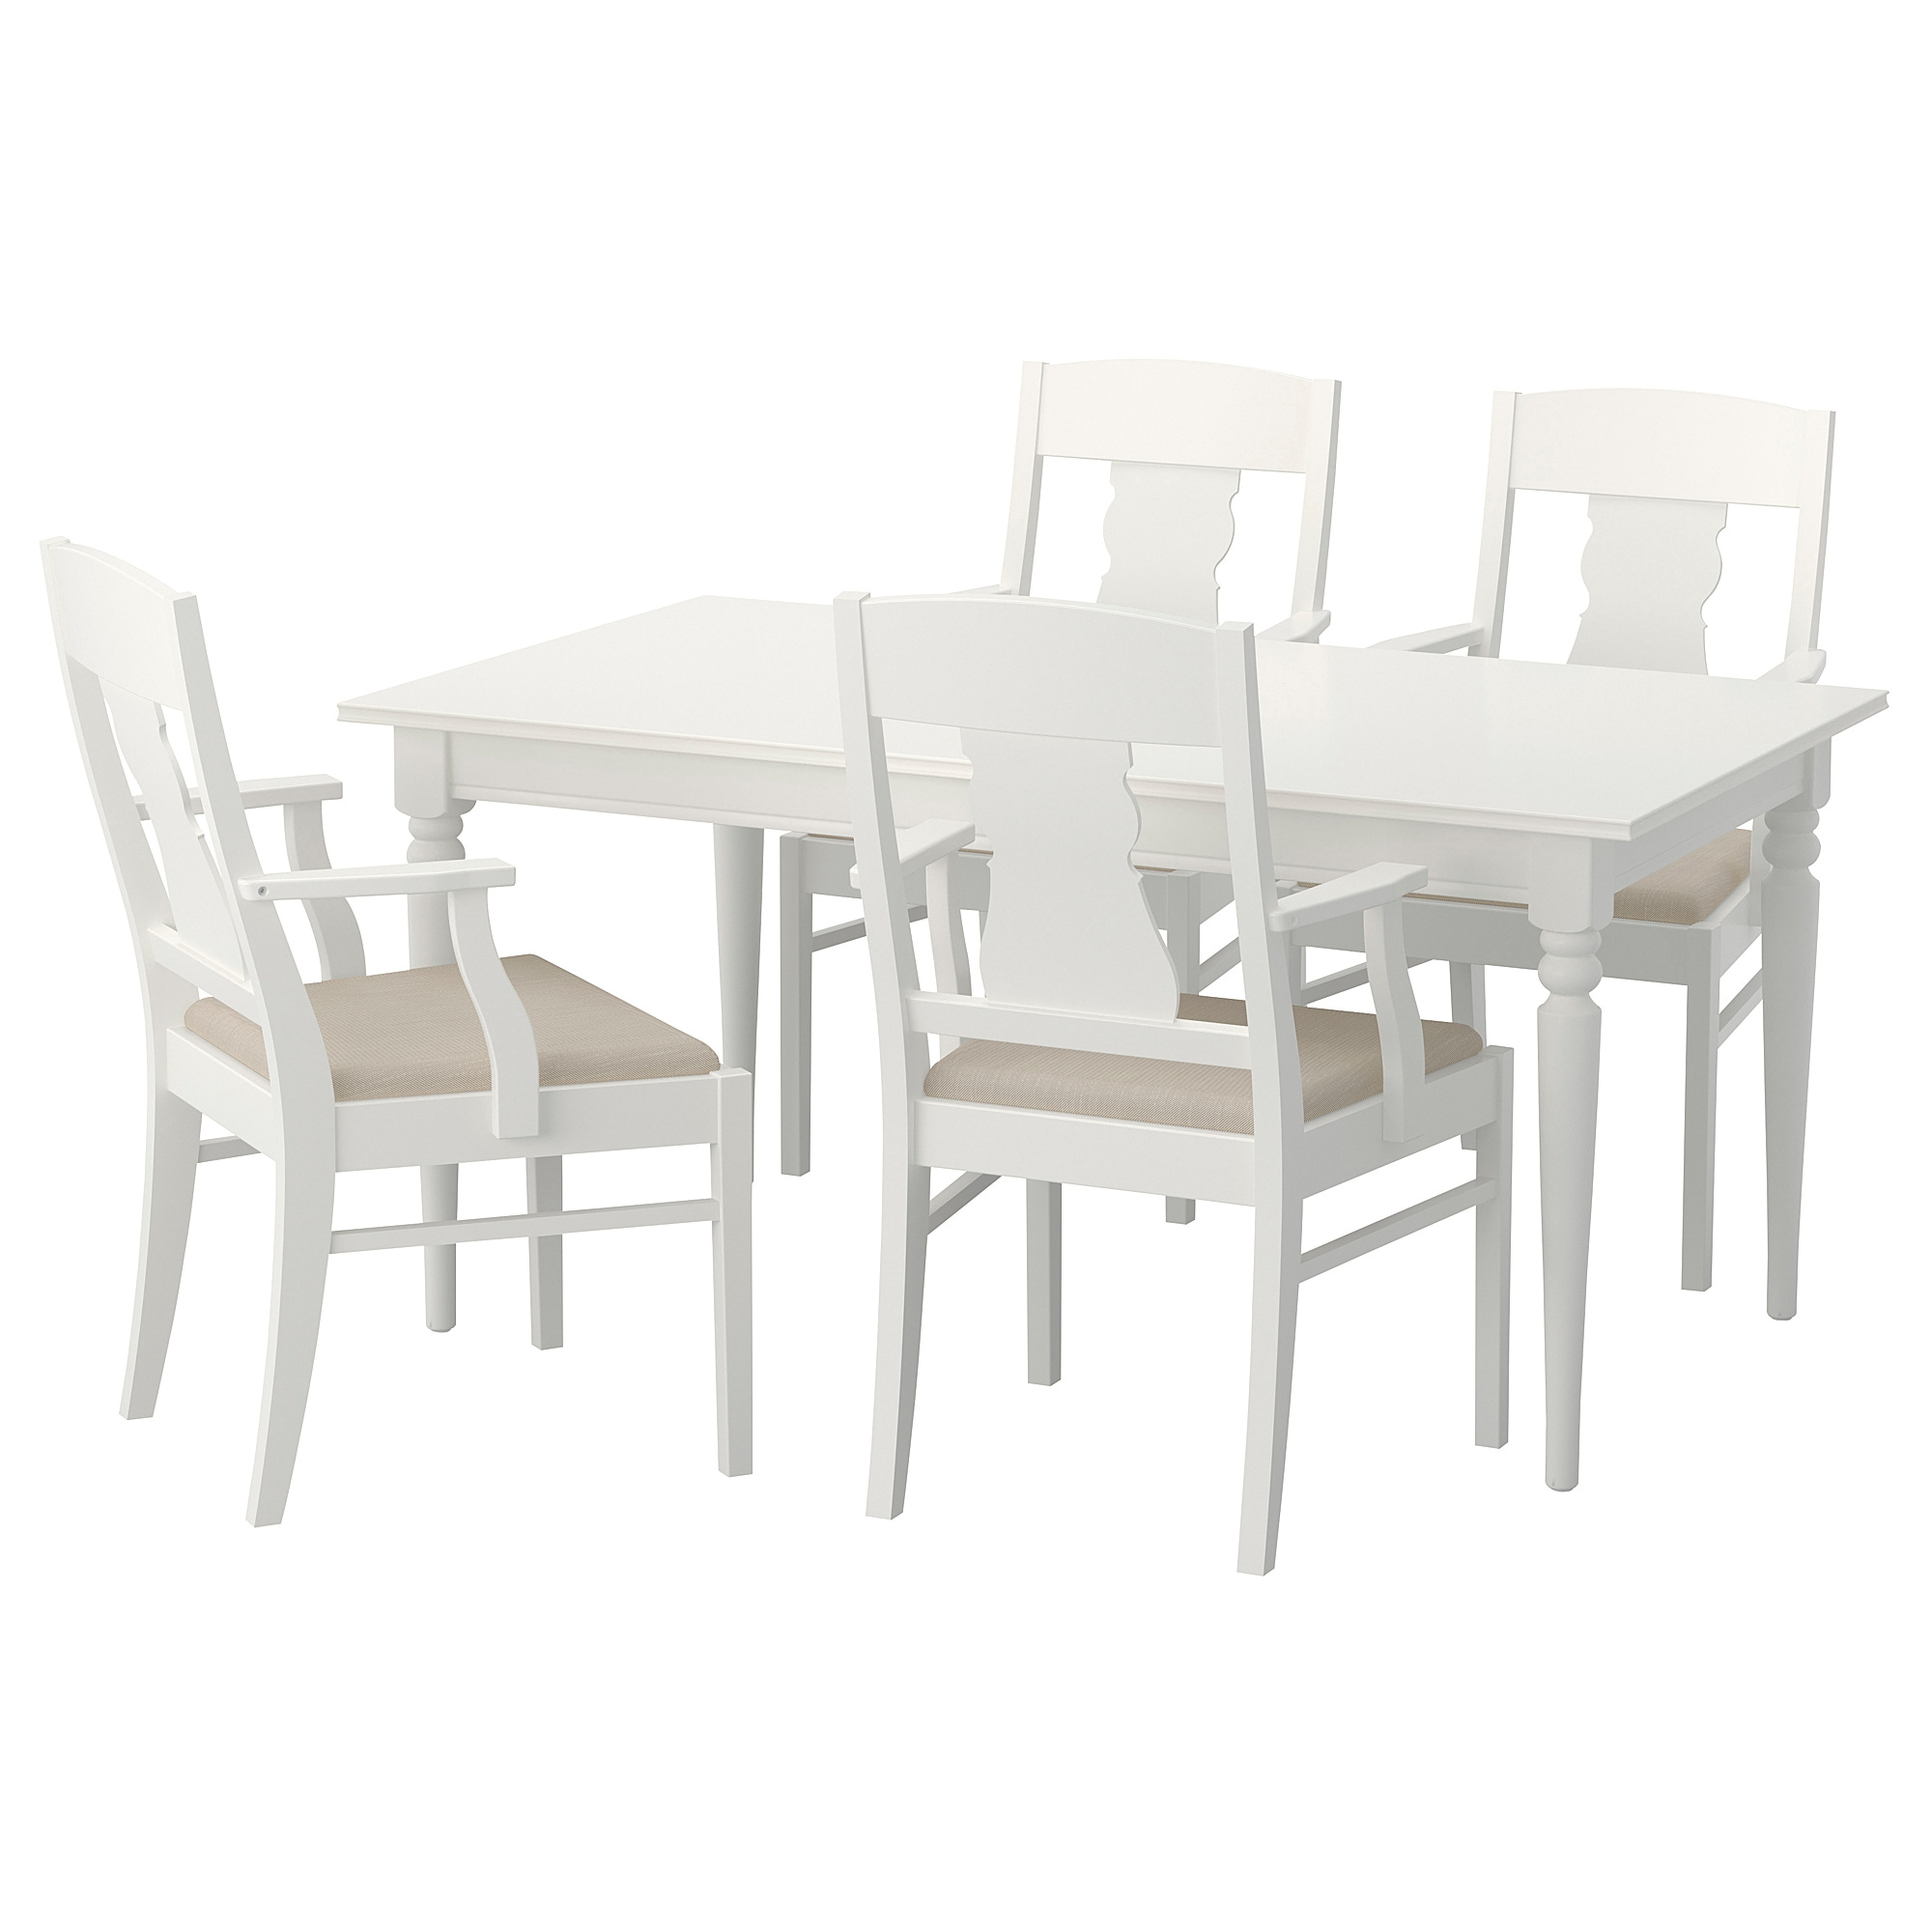 INGATORP / INGATORP Table and 4 chairs - white - IKEA